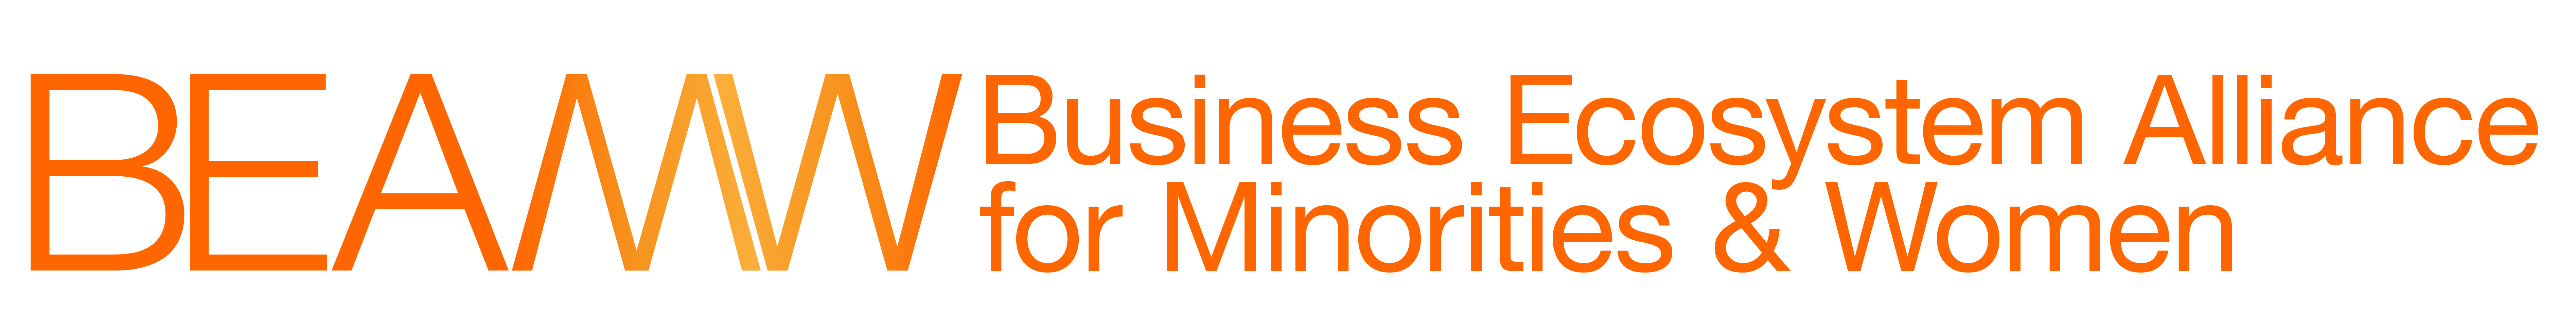 BEAMW: Business Ecosystem Alliance for Minorities and Women in the Greater Houston area, Texas